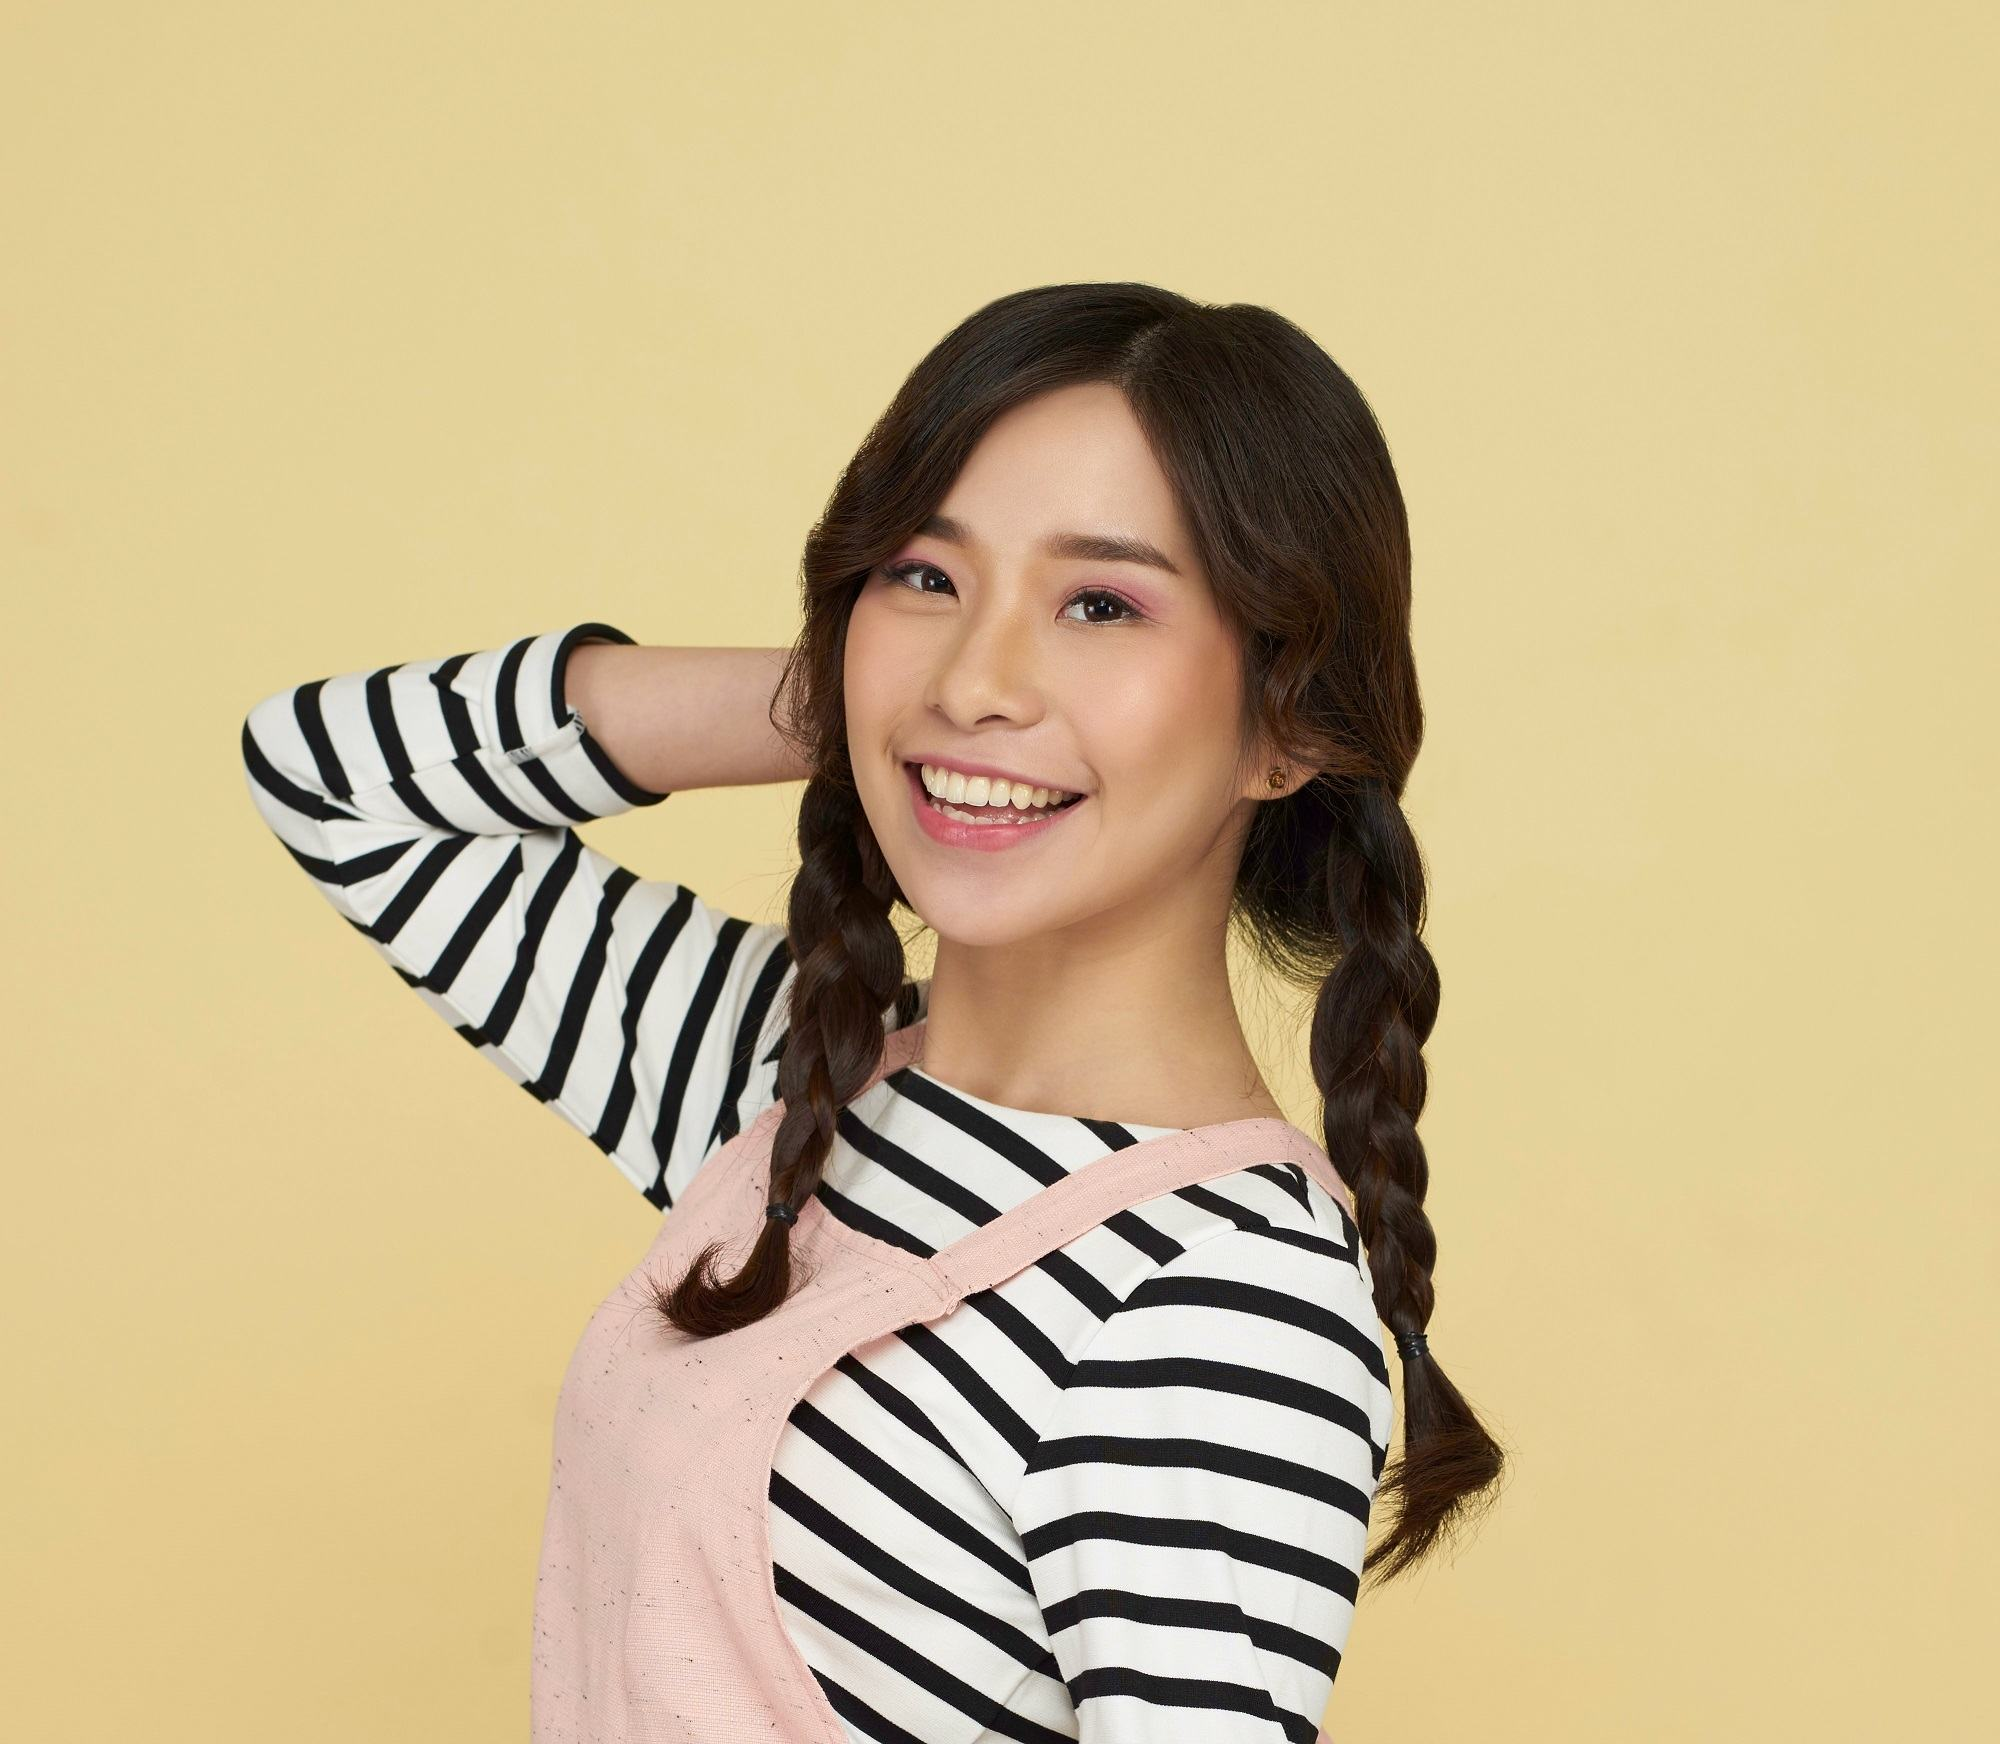 Simple braids: Asian woman wearing a pink jumper and striped long-sleeved shirt with long dark hair in twin braids